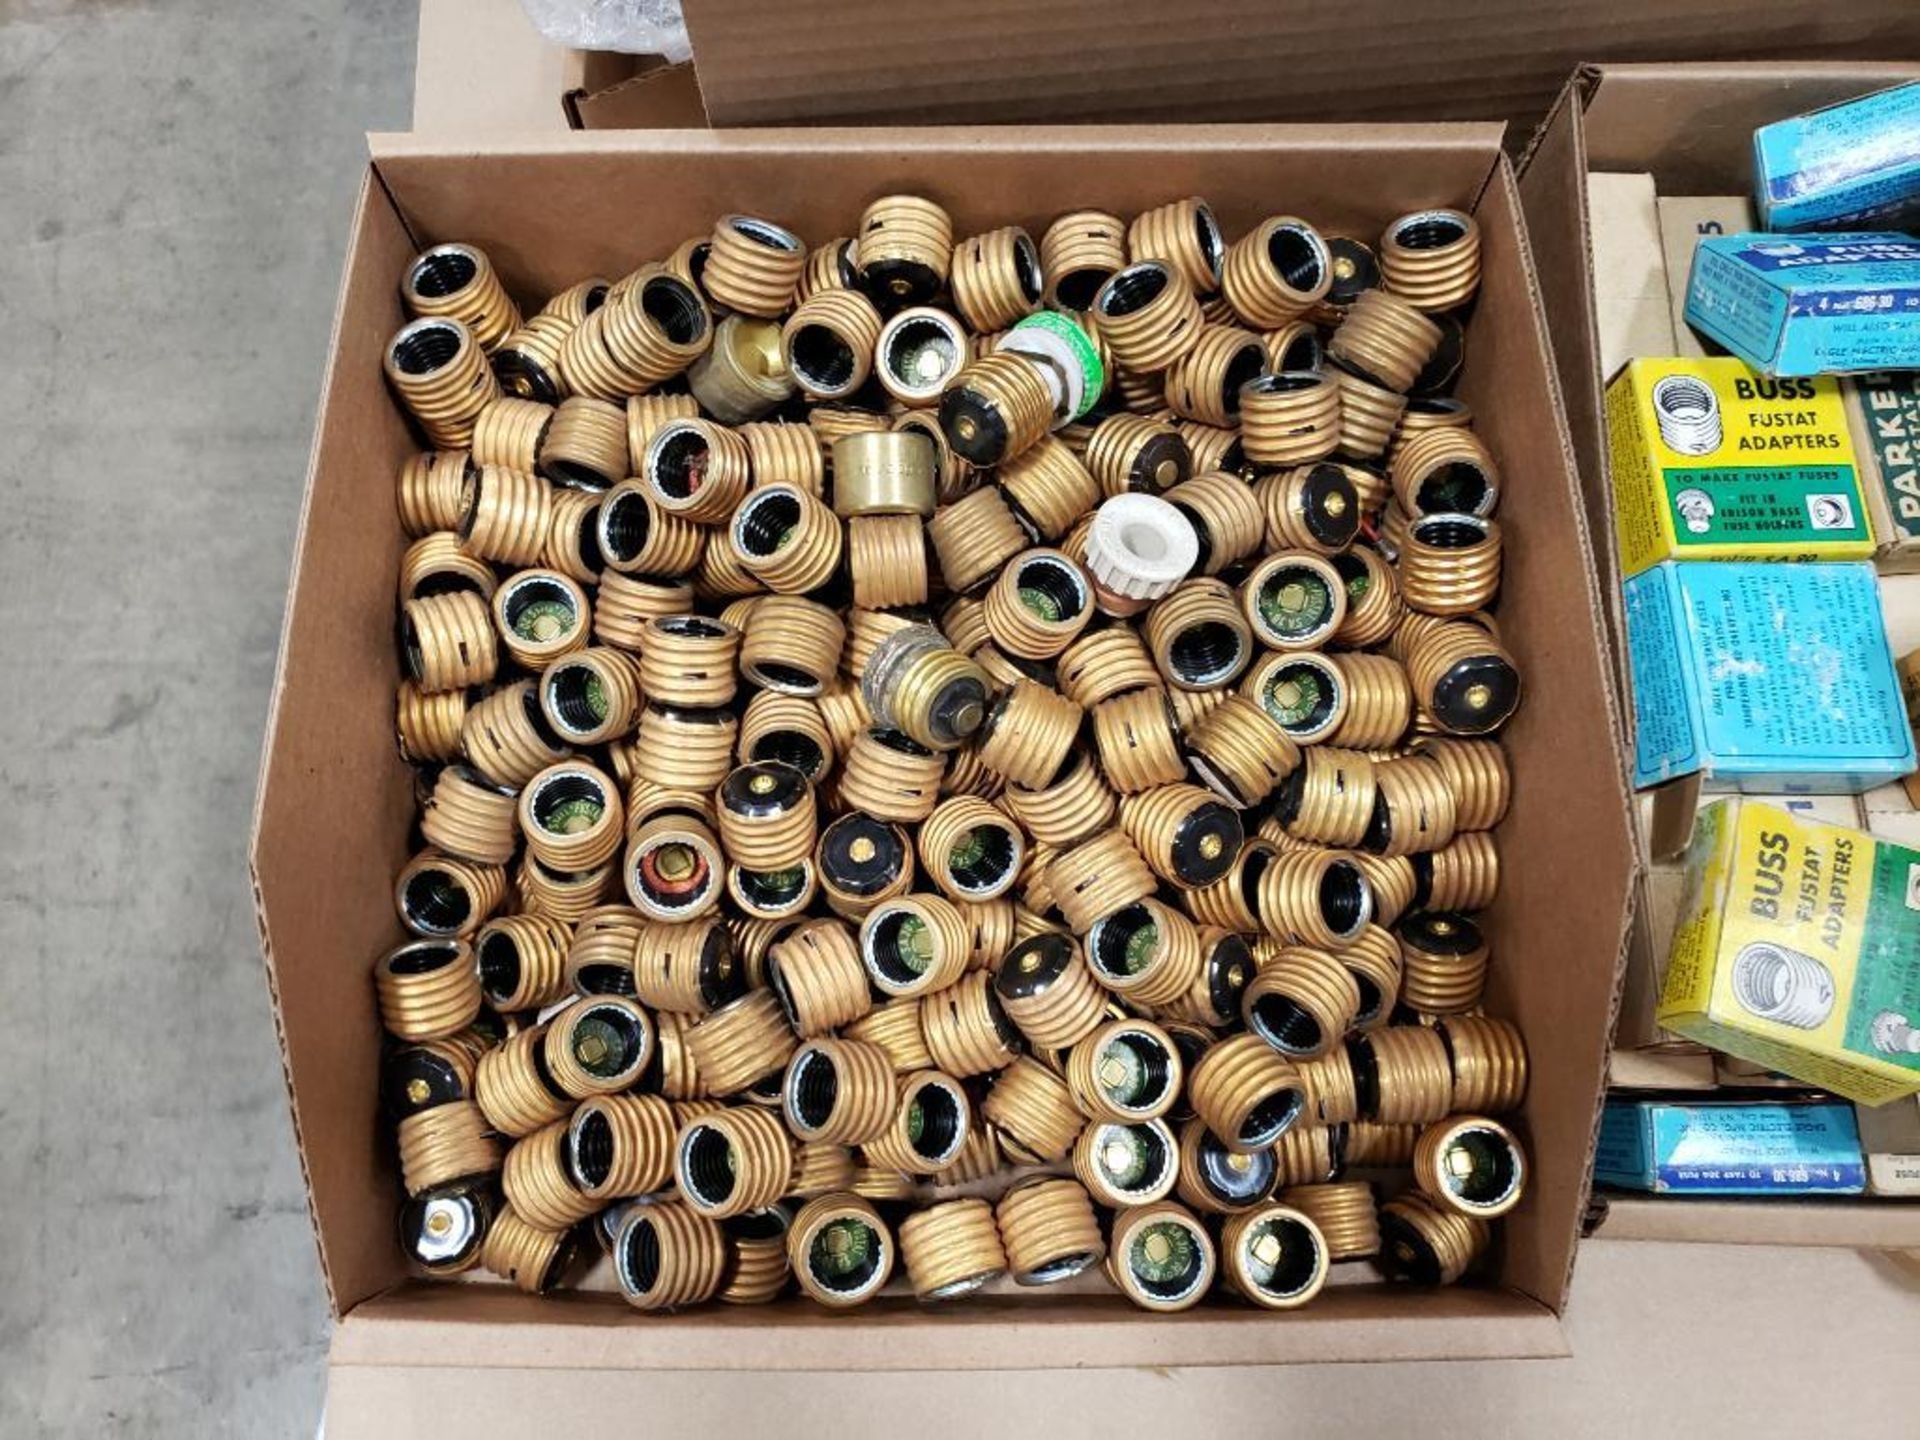 1/2 Pallet of assorted parts. Fuse adapters, plugs, switches. Pass & Seymour, Buss. - Image 2 of 7